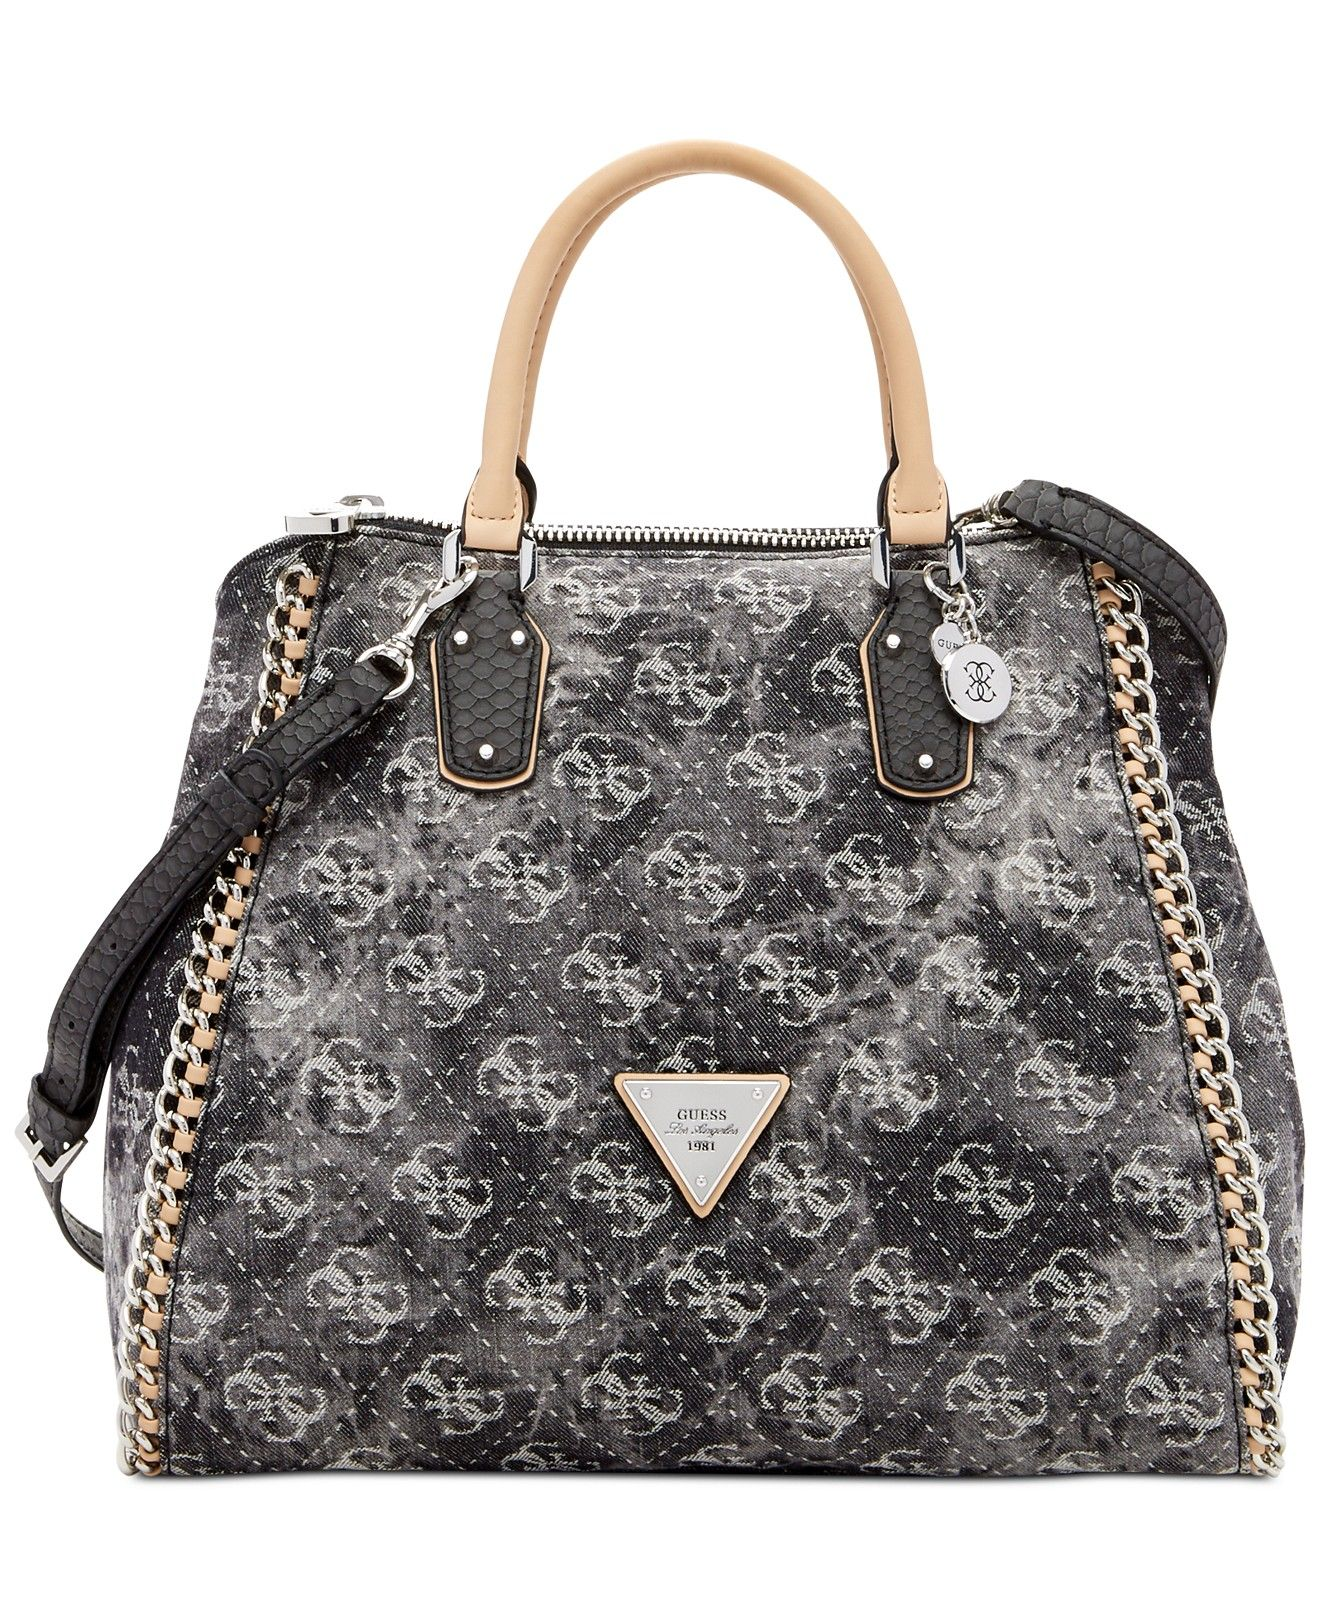 GUESS Amelle Denim Signature Retro Medium Satchel - All Handbags - Handbags    Accessories - Macy s 3cd9165585691